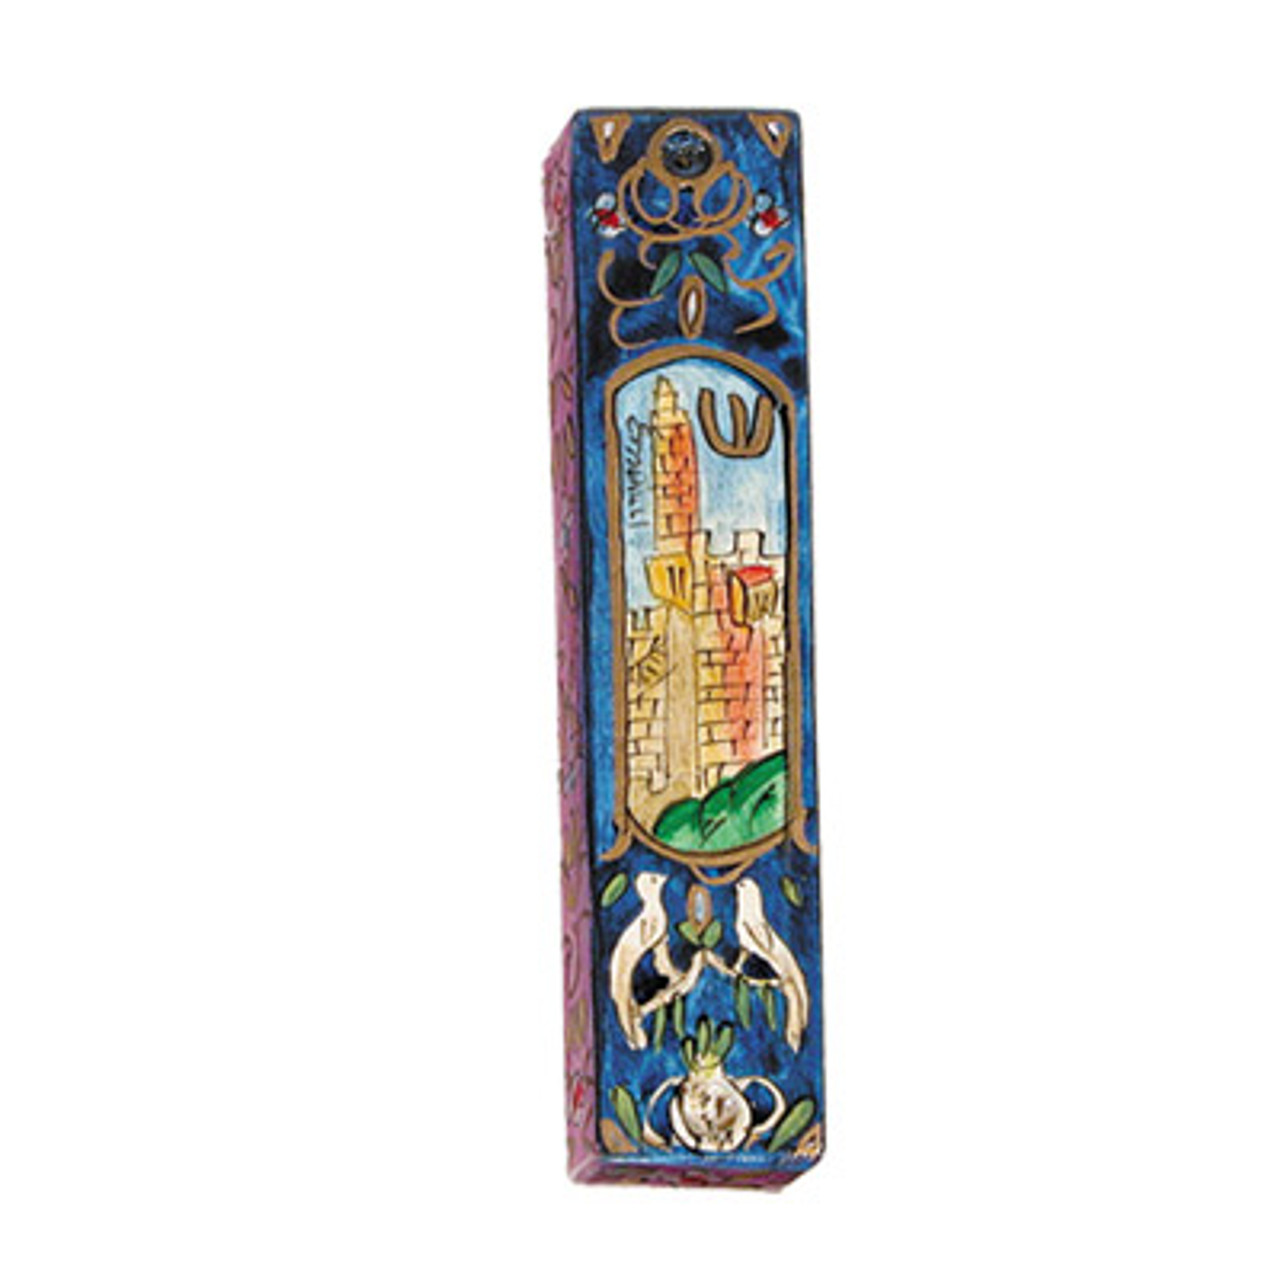 Tower of David Mezuzah